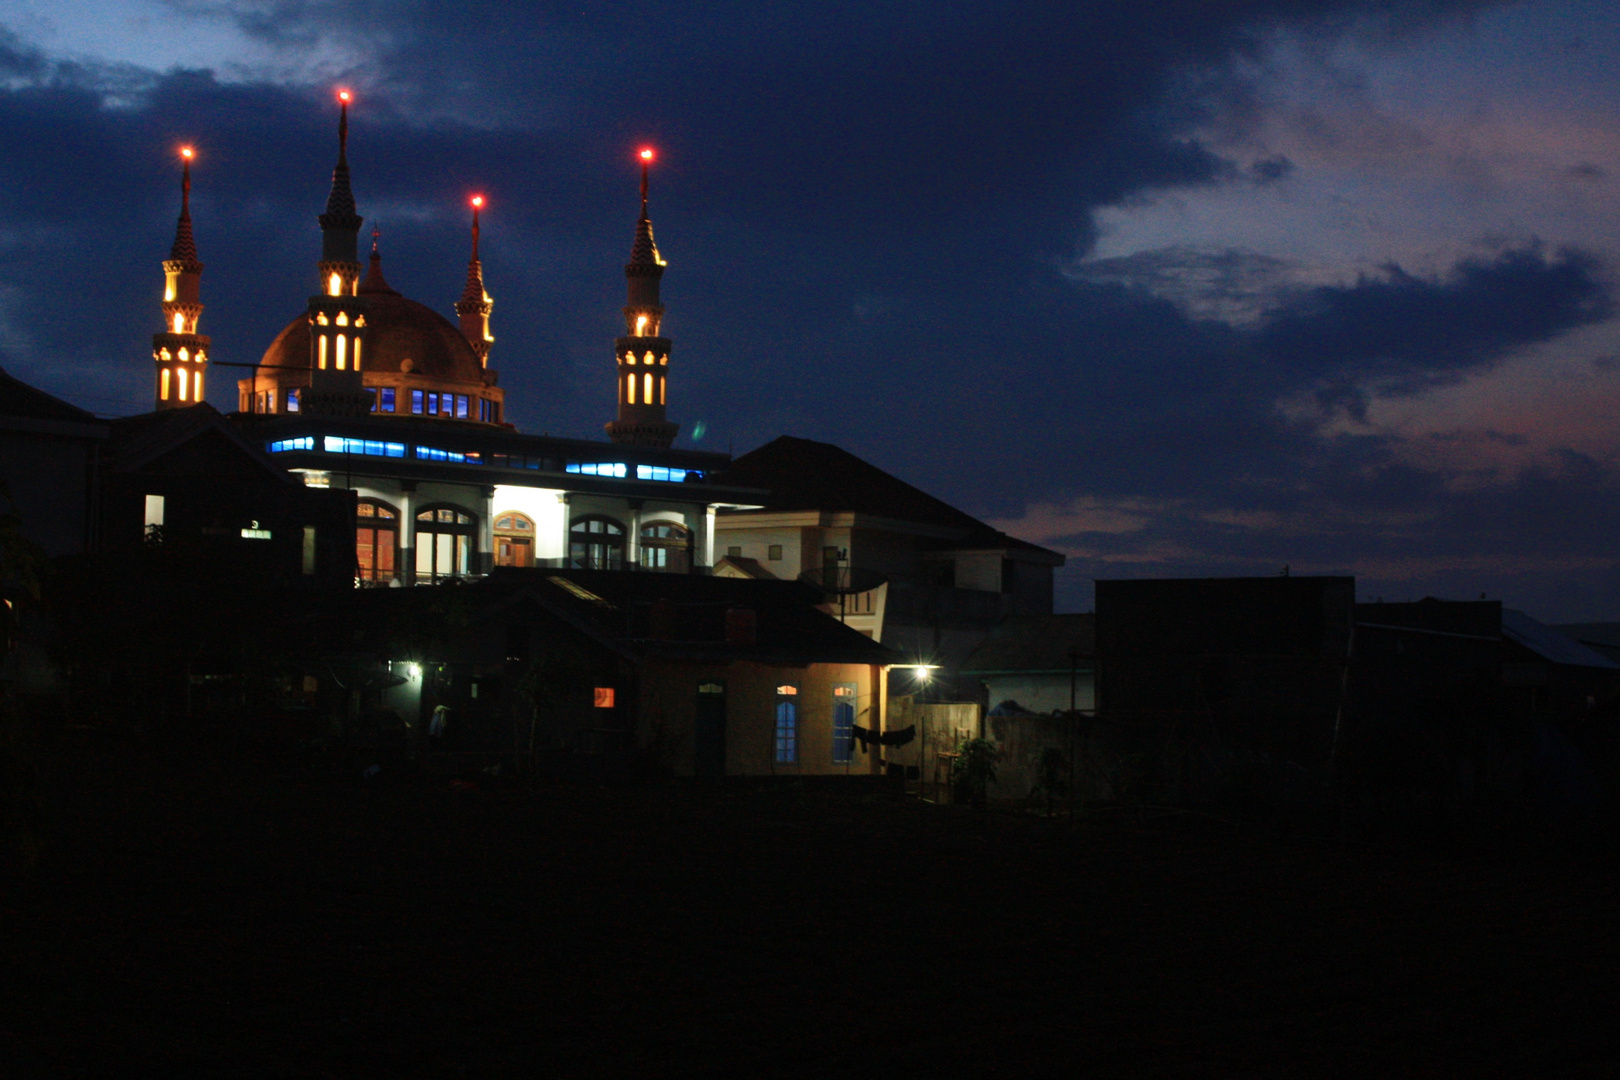 Mosque in Dieng, Central Java